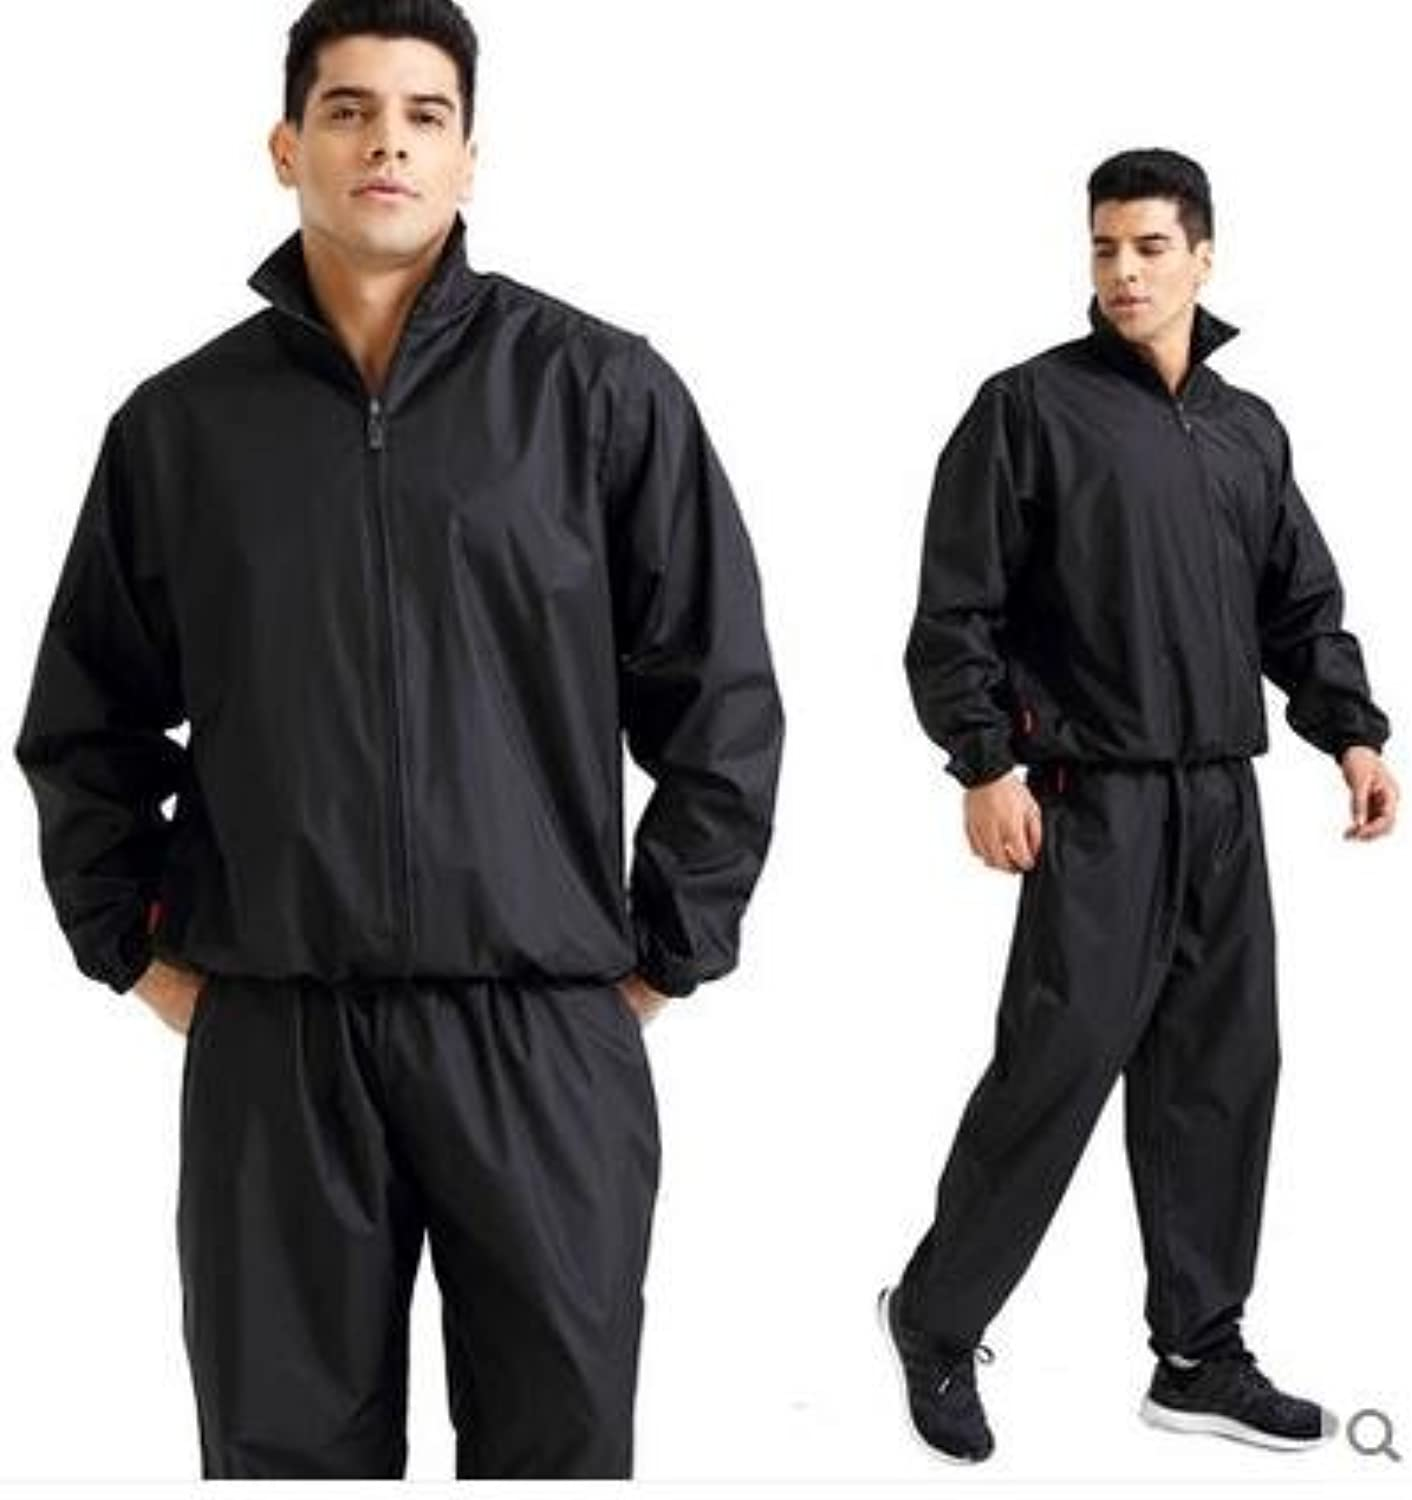 Elwow Men's Plus Size Two Piece Non Rip Sauna Suit, Sweat Suit, Track Weight Loss Slimmimg Fitness Gym Exercise Boxing Runing Loss Weight Training Suit, Long Top and Trousers